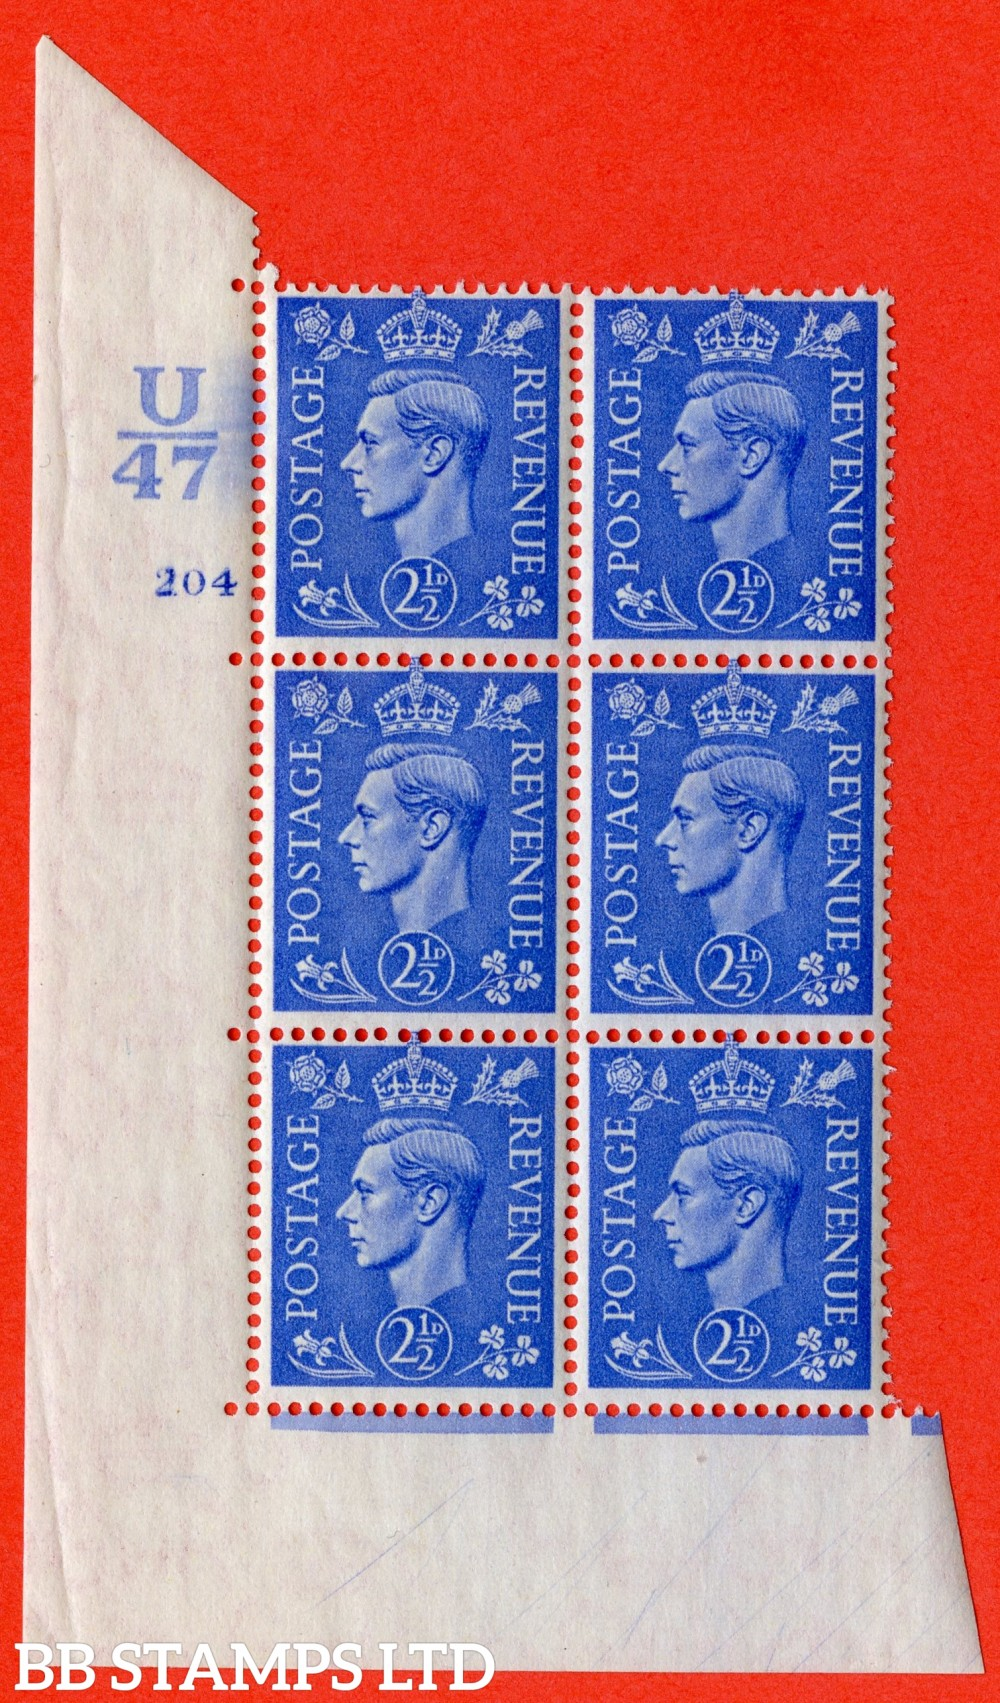 "SG. 489. Q14. 2½d Light ultramarine. A superb UNMOUNTED MINT "" Control U47 cylinder 204 no dot "" control block of 6 with perf type 5 E/I."